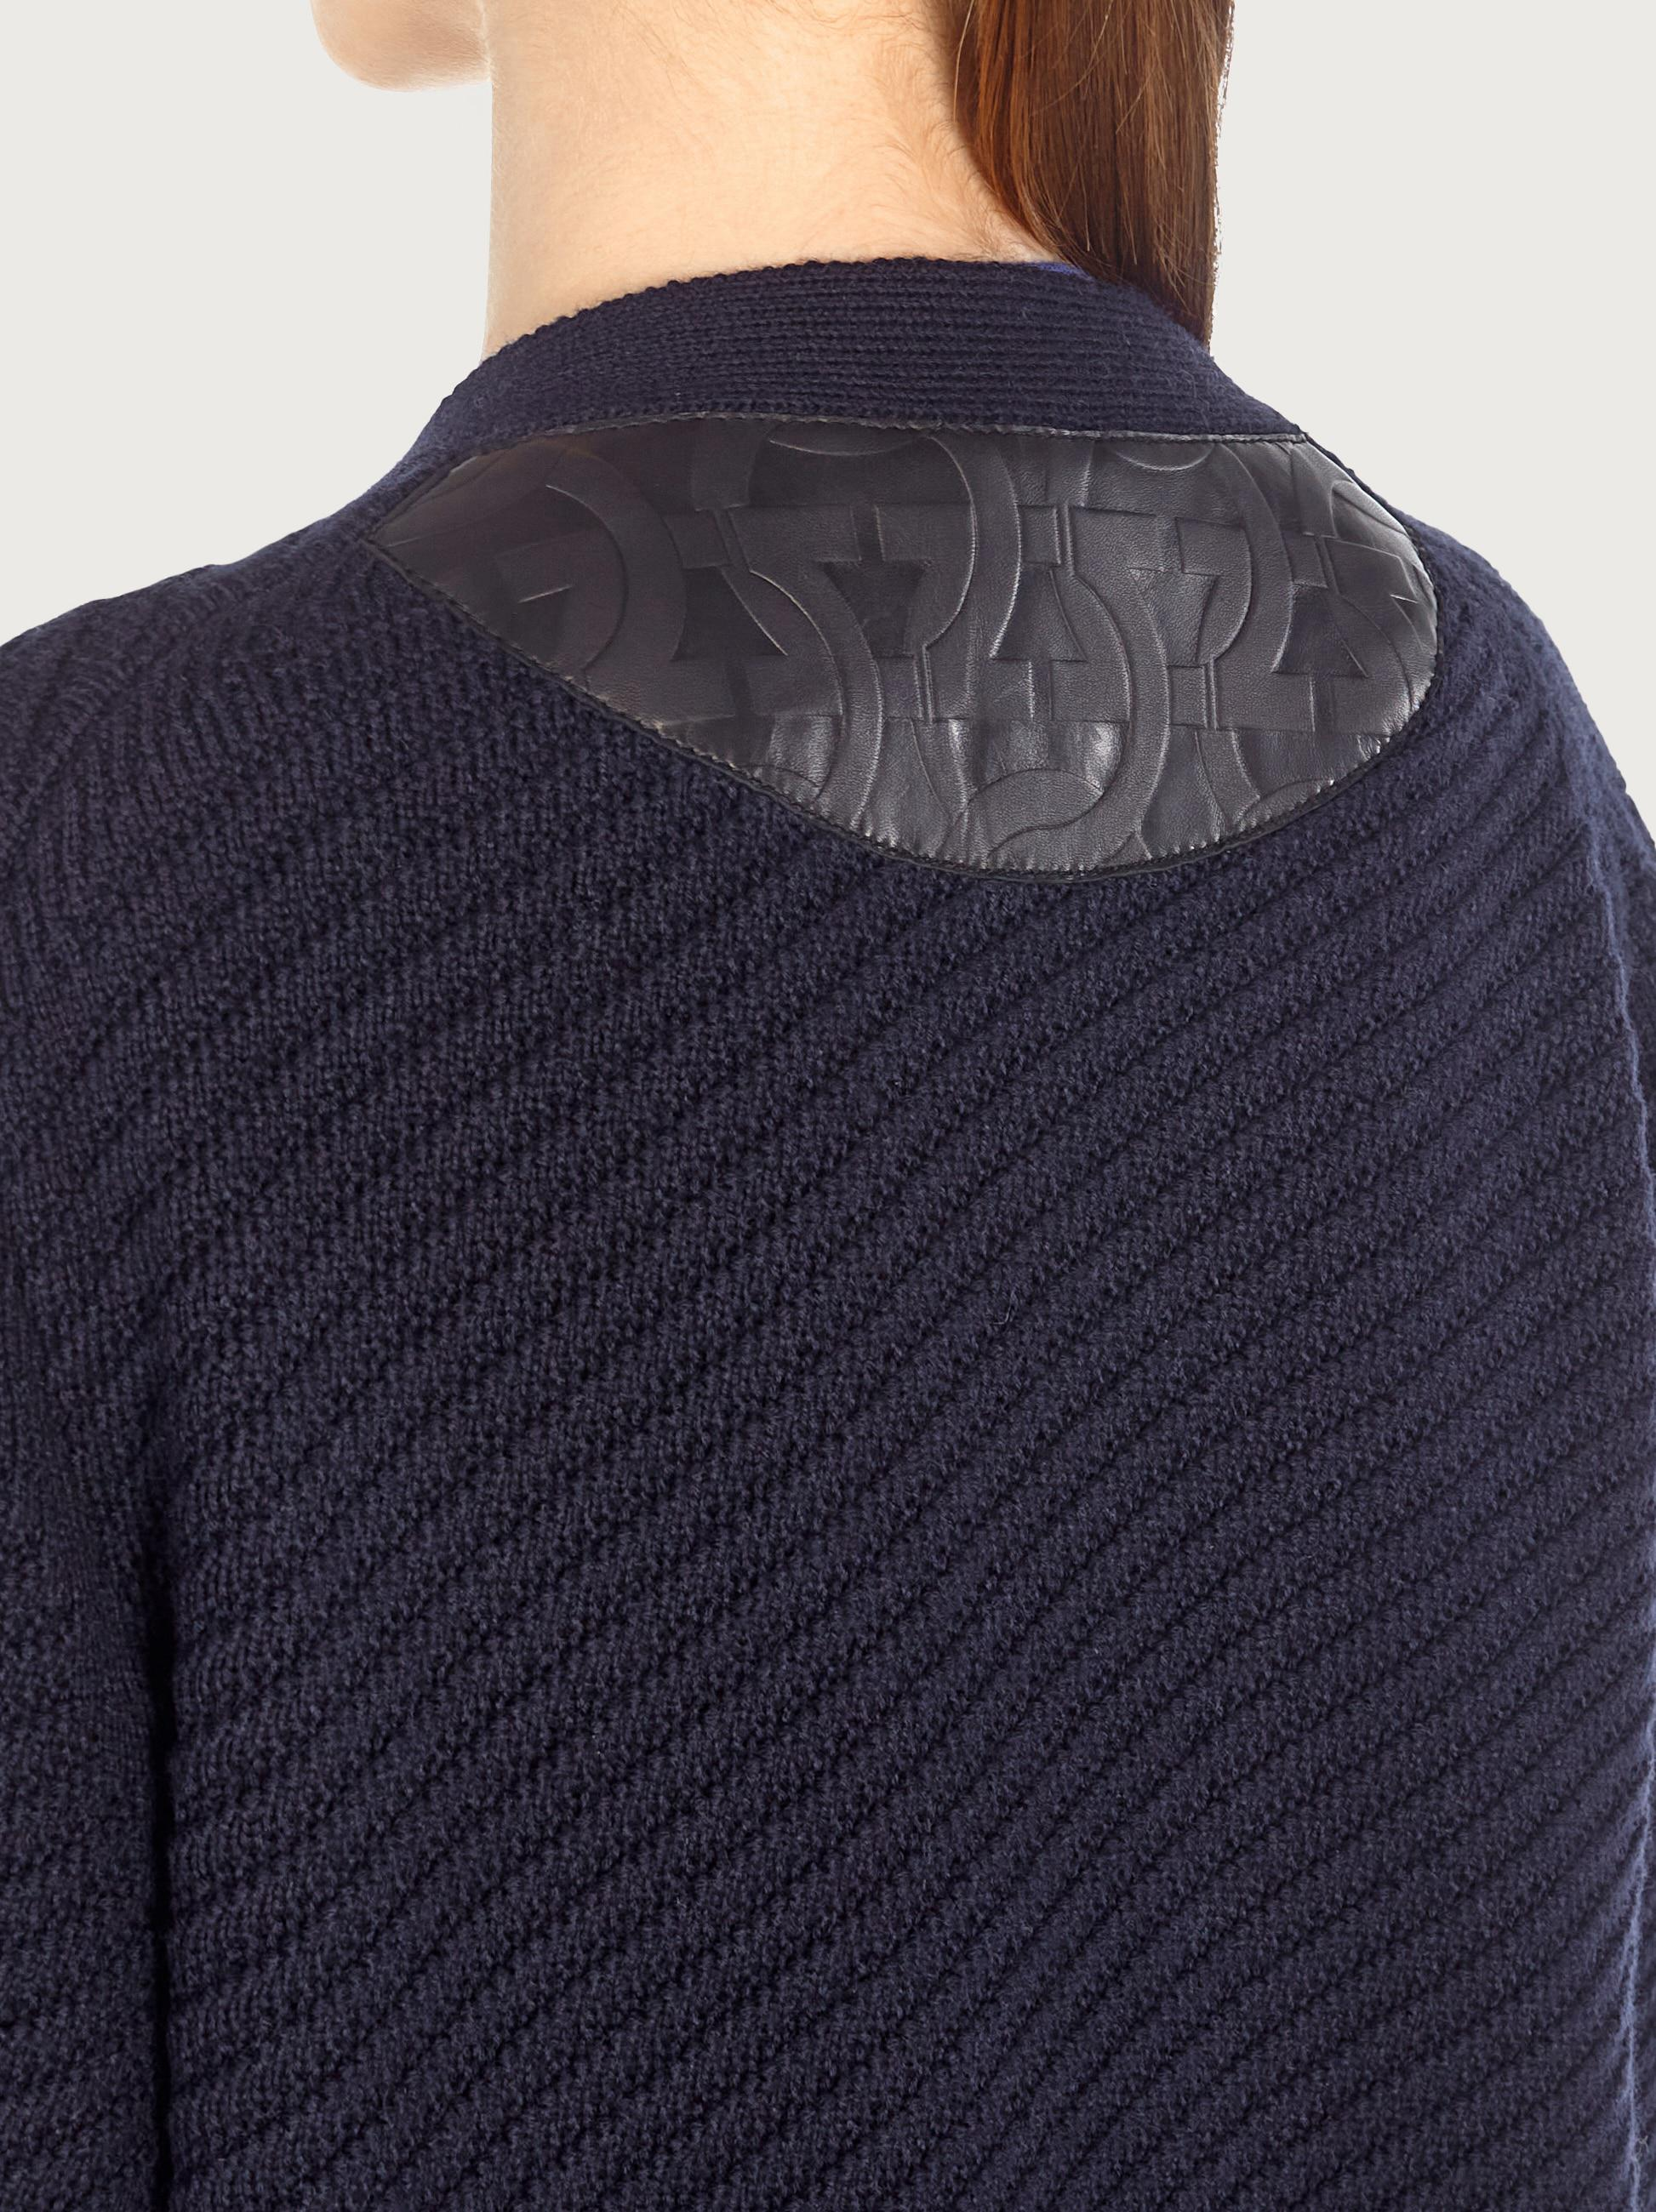 CARDIGAN WITH LEATHER POCKETS 4